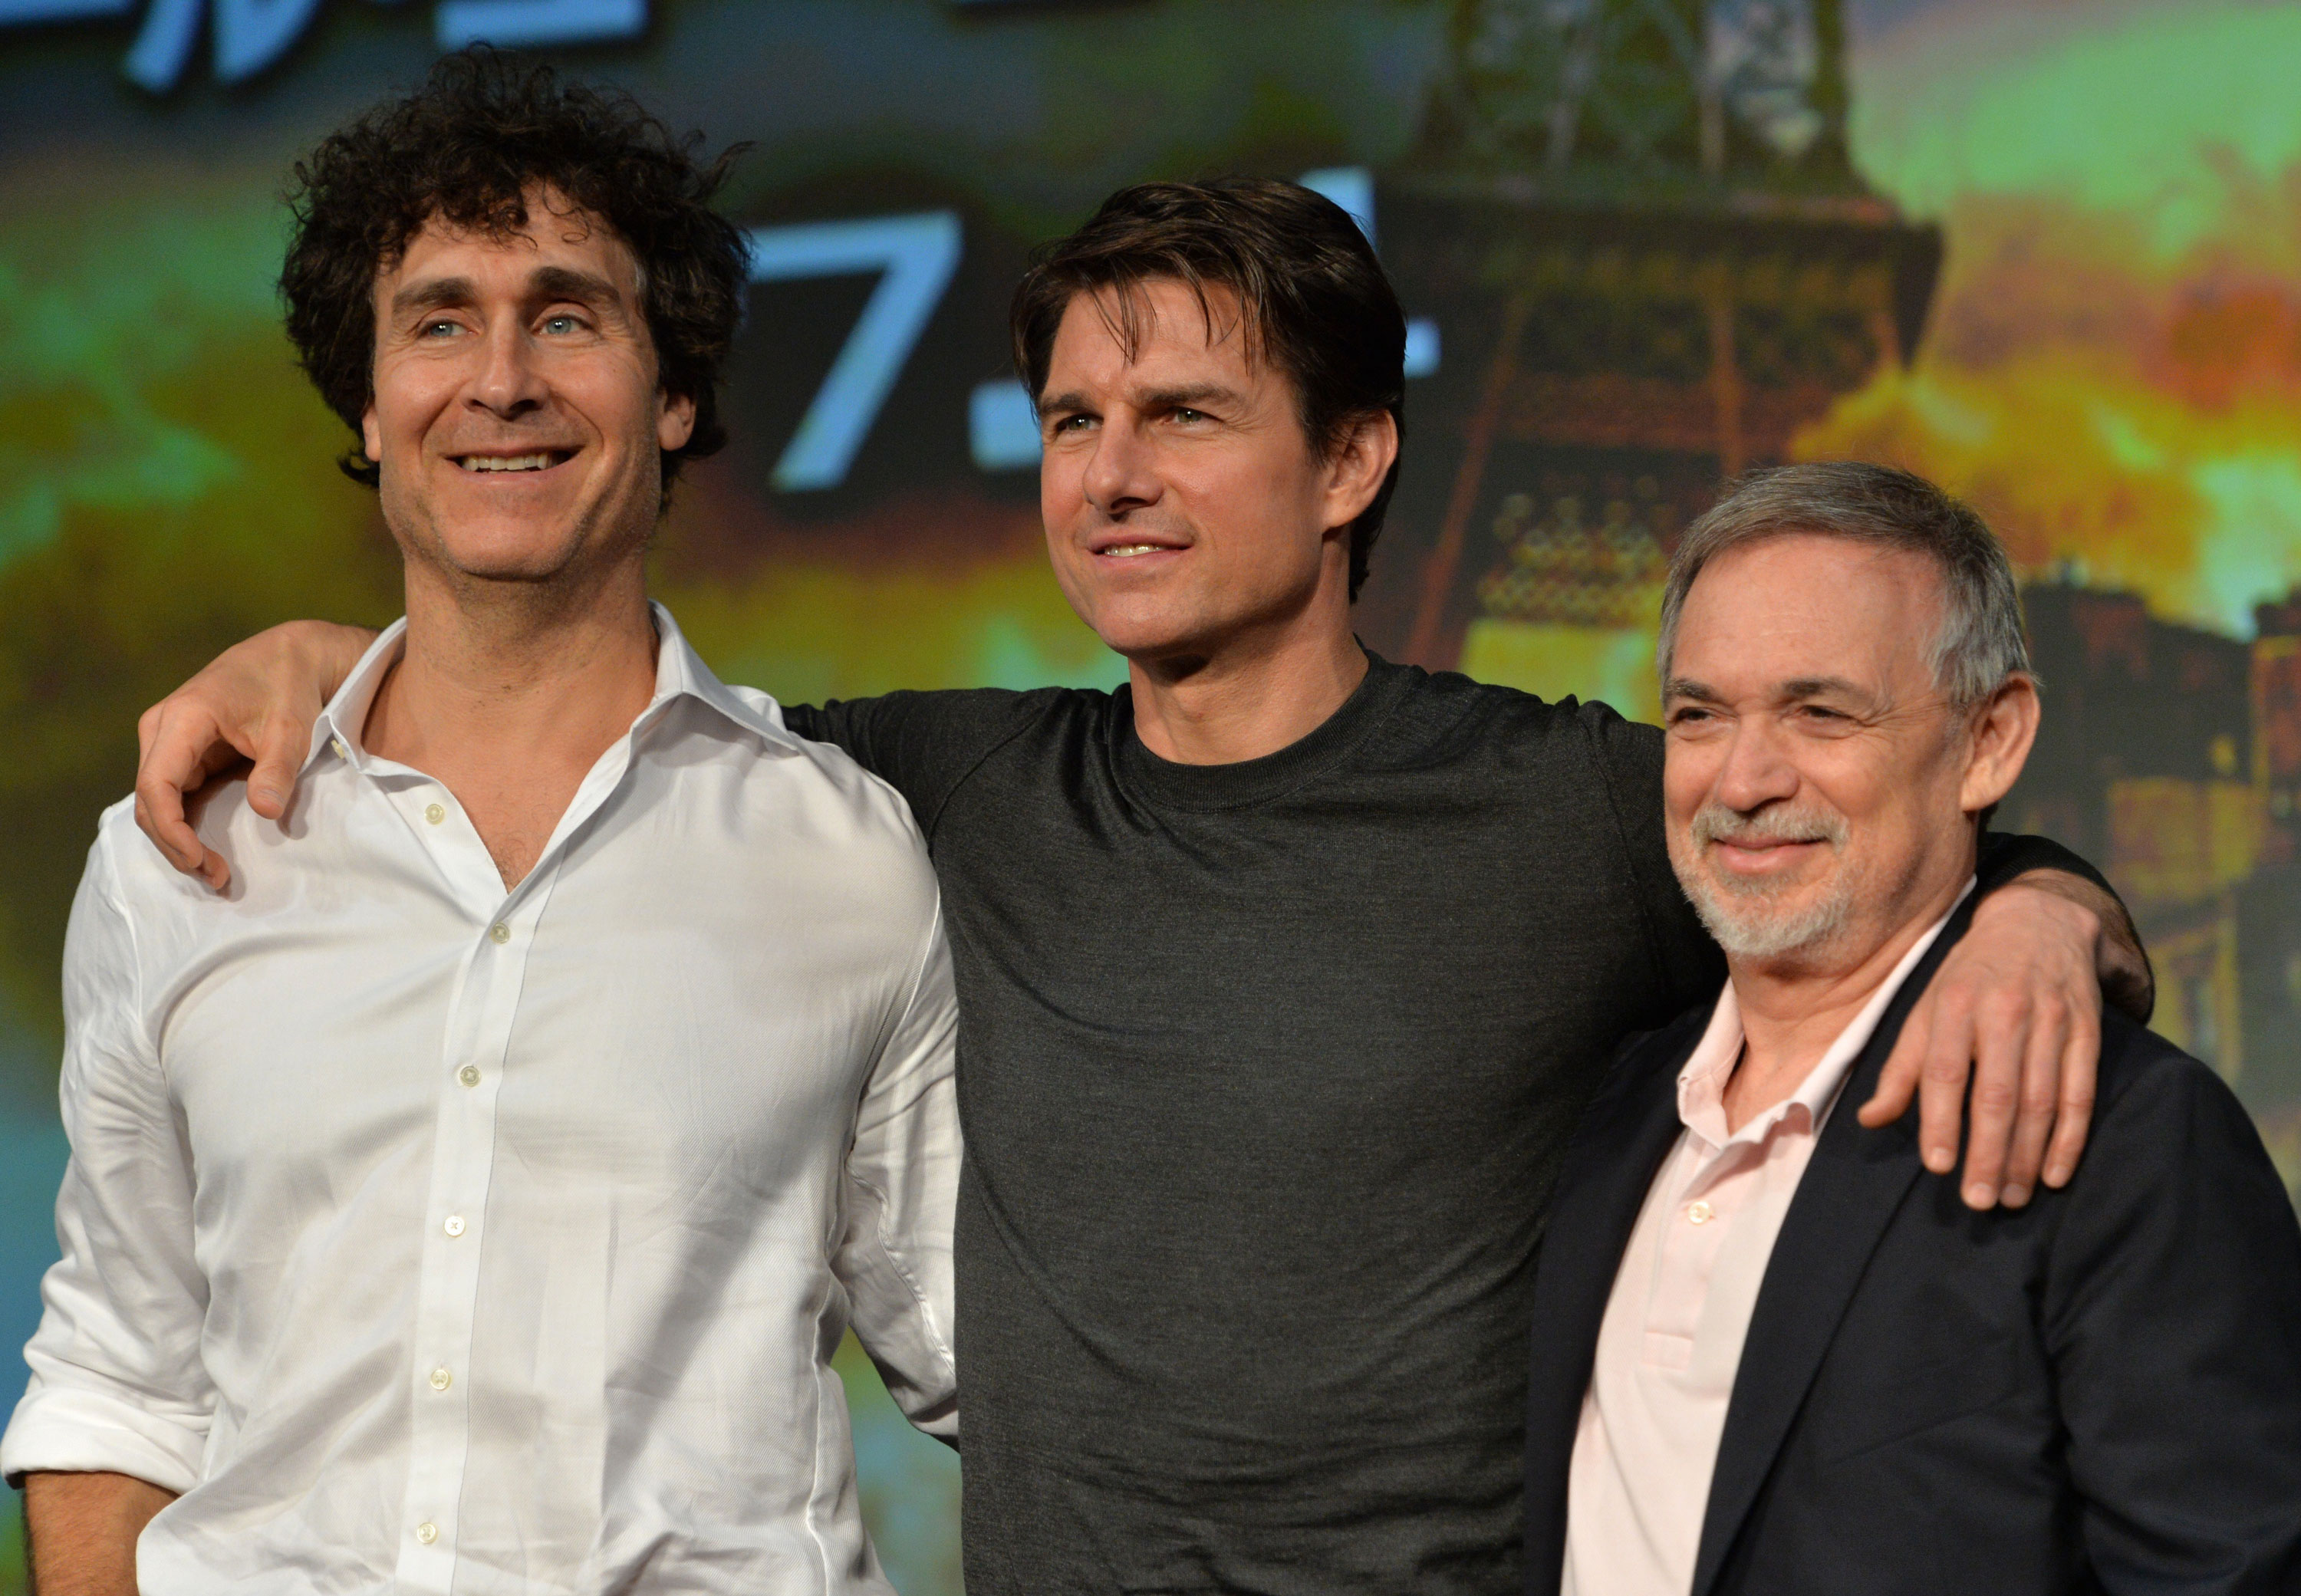 Doug Liman to direct Tom Cruise in movie shot in space